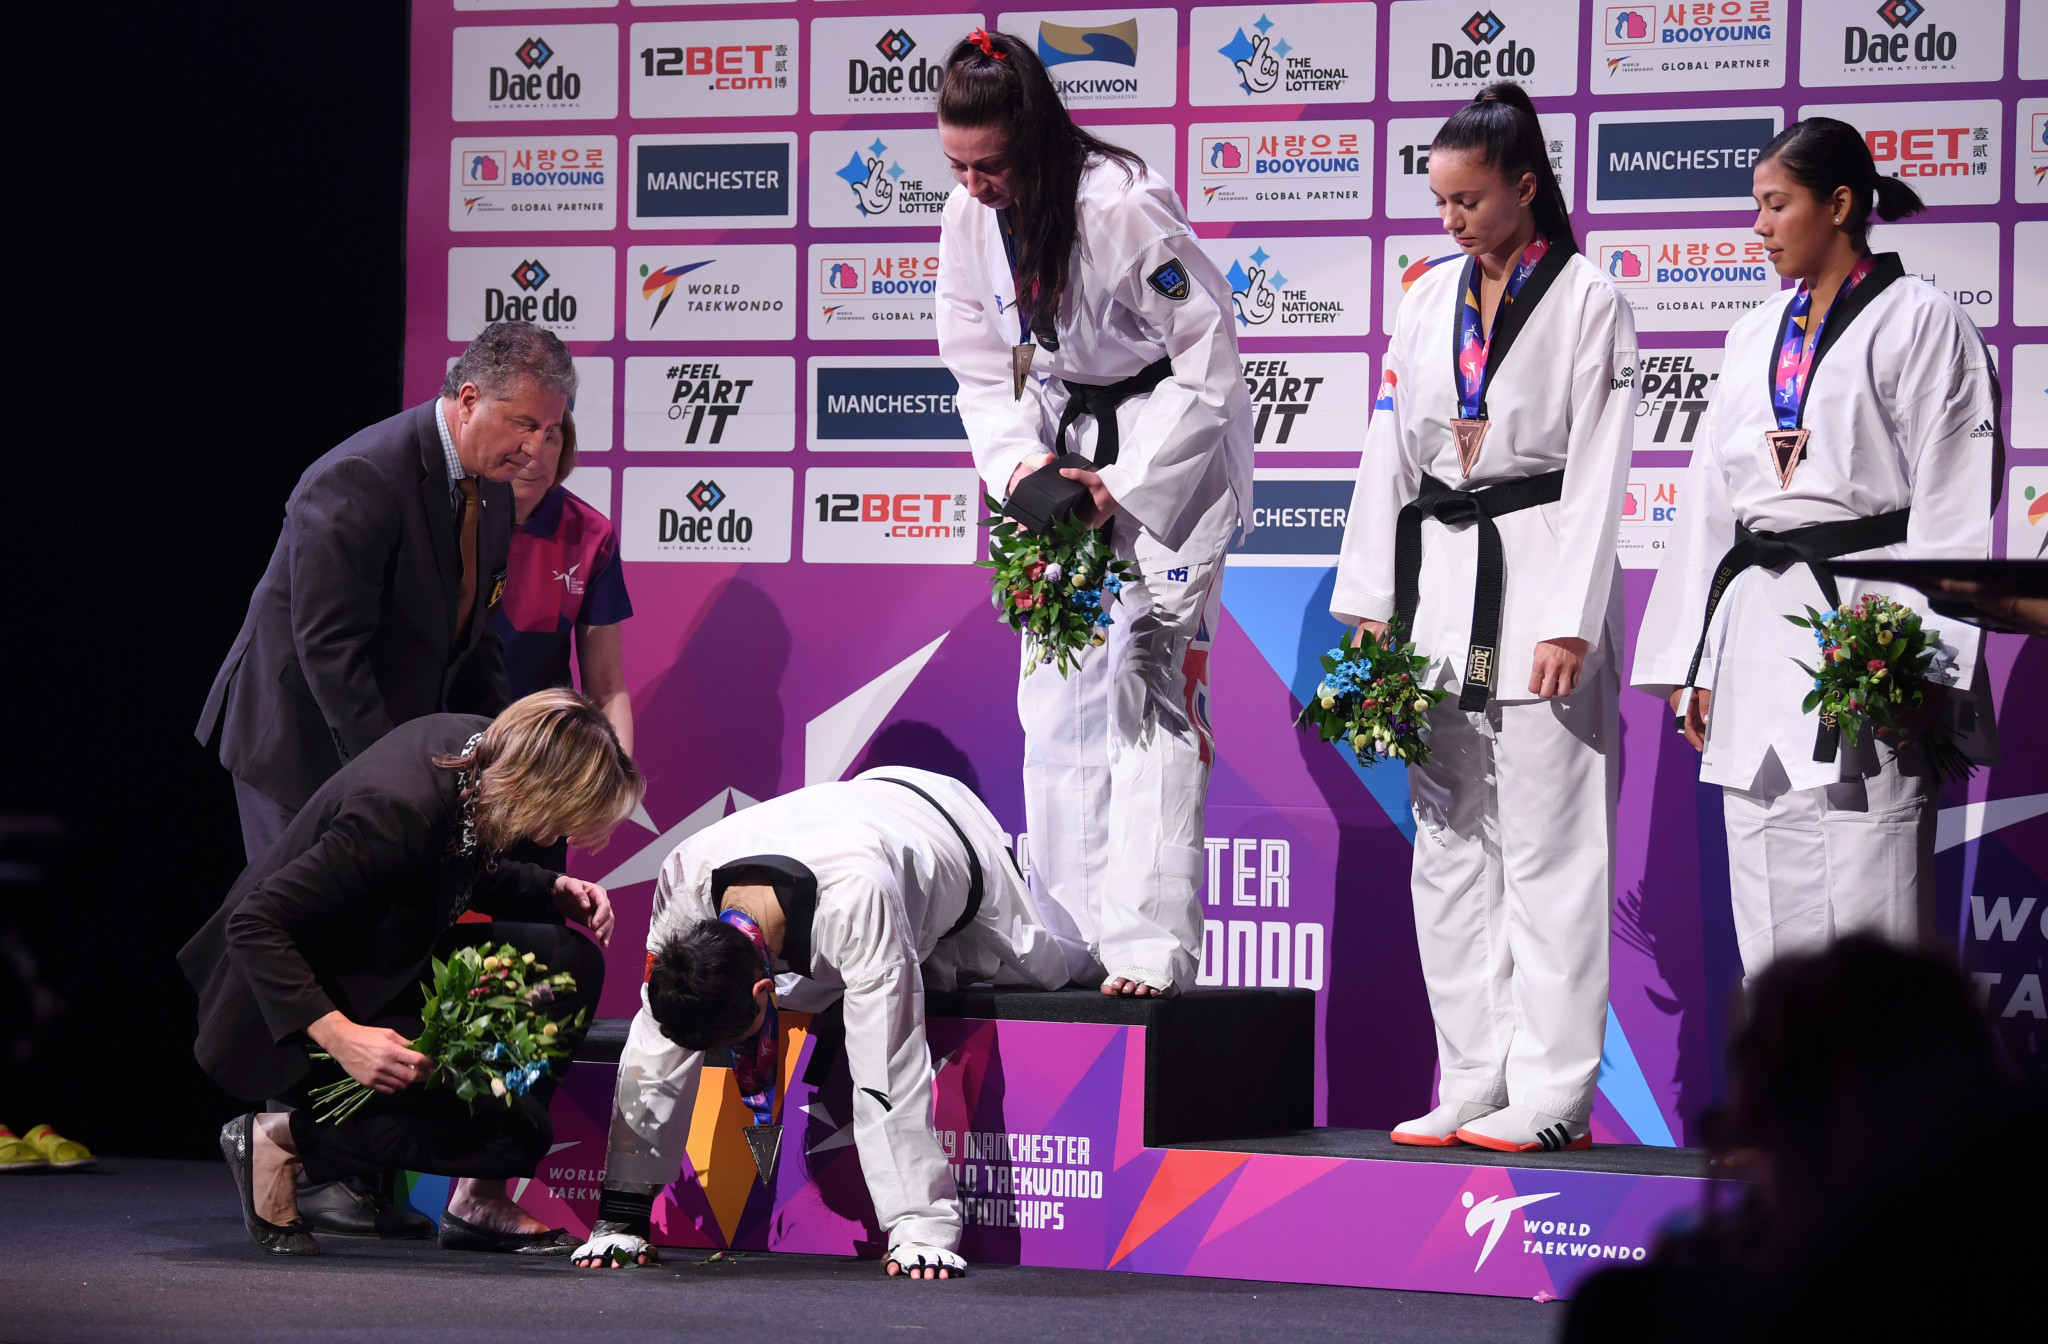 Zheng collapsed again while the British national anthem was being played during the medal ceremony ©Getty Images